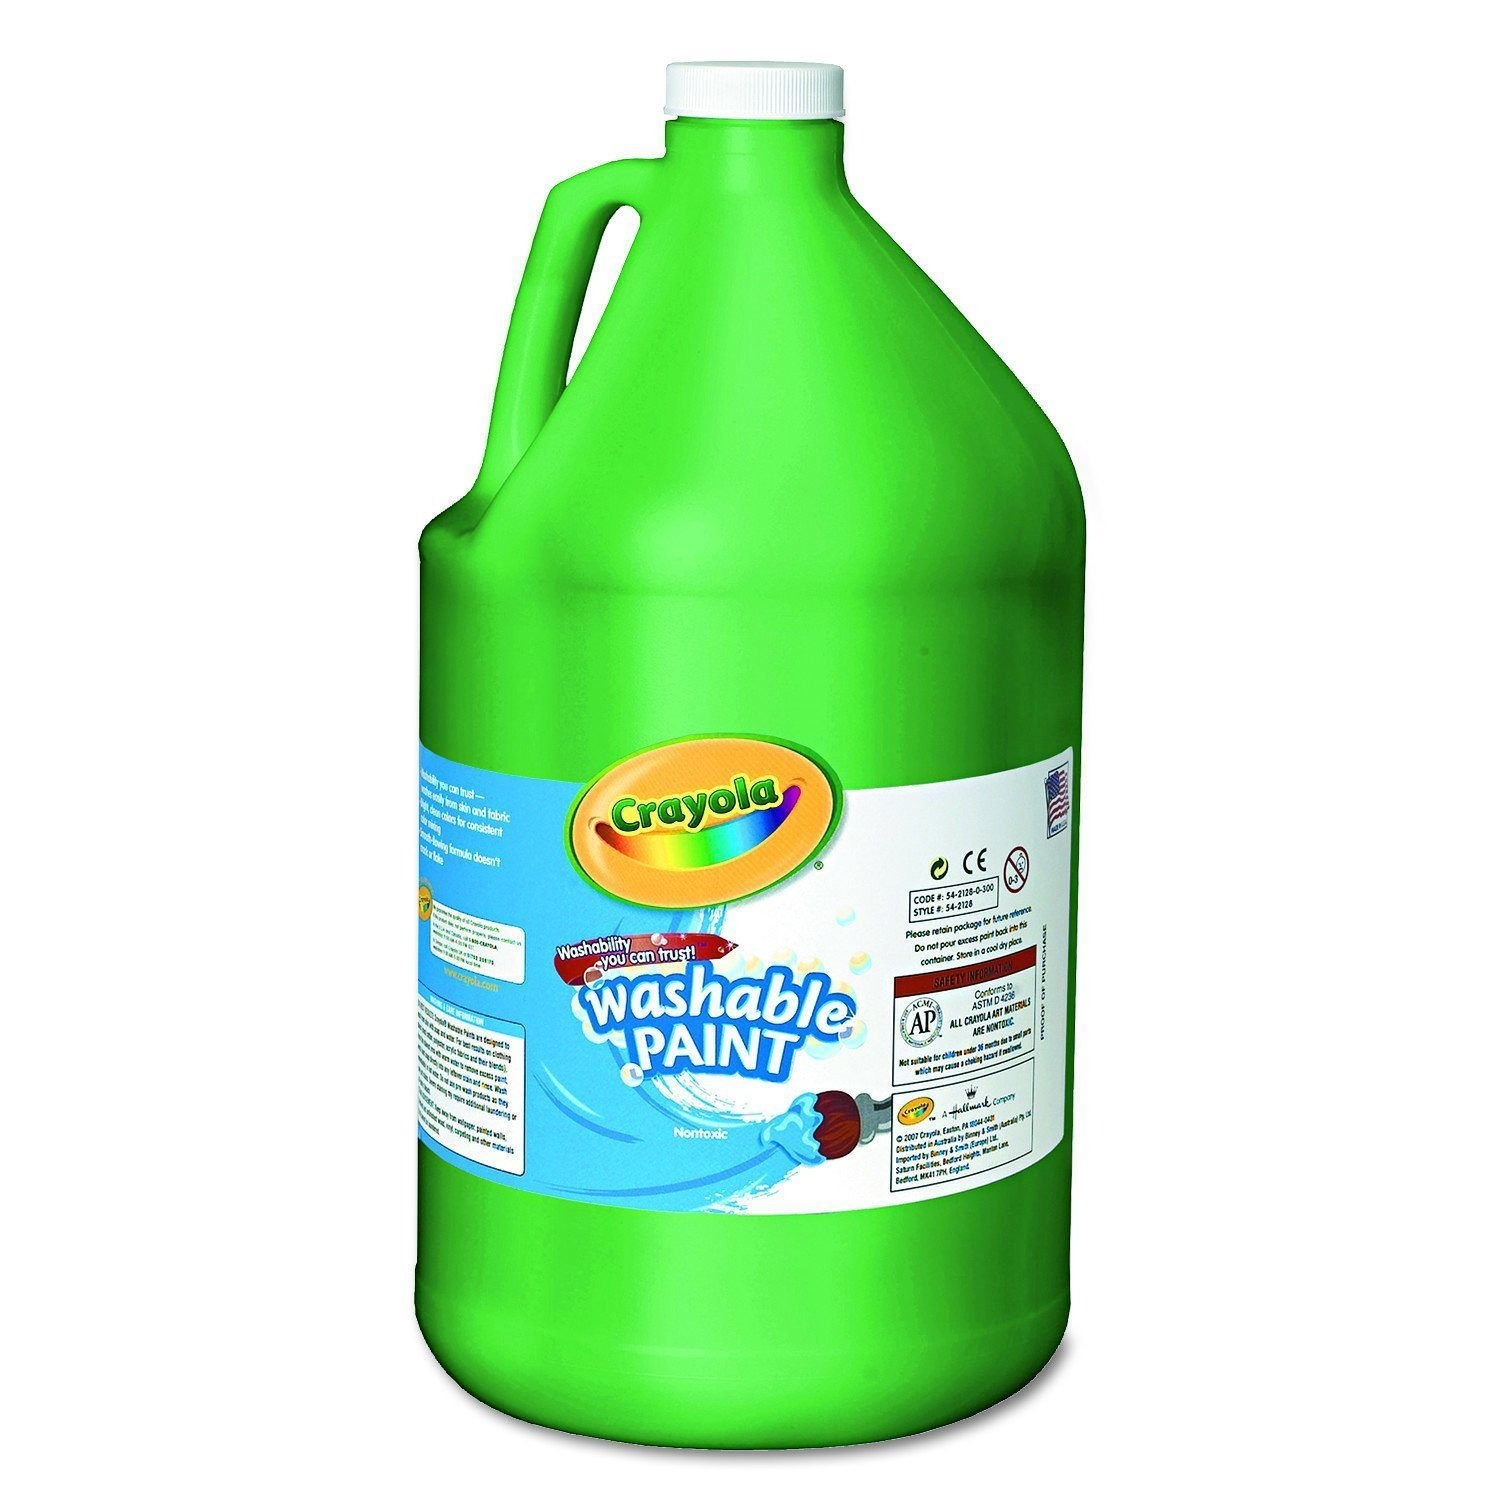 Crayola Washable Green Paint, 1 Gallon Size, Painting Supplies in Bulk by Crayola